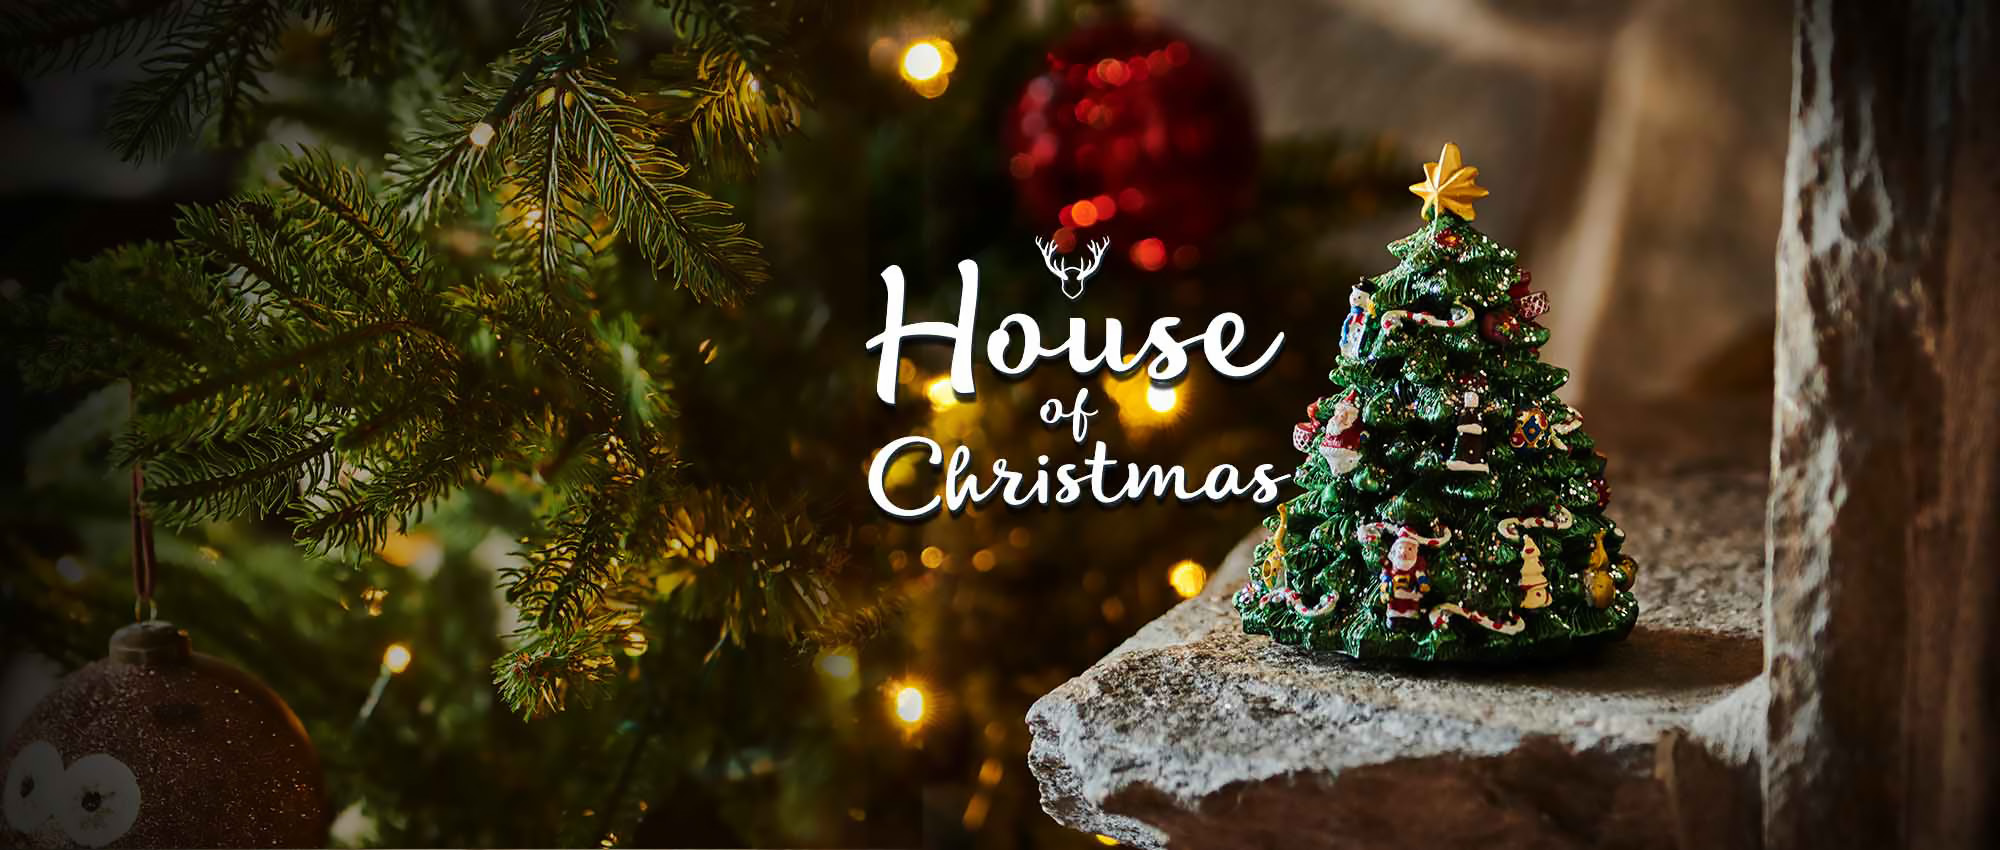 jul hos feel - house of christmas